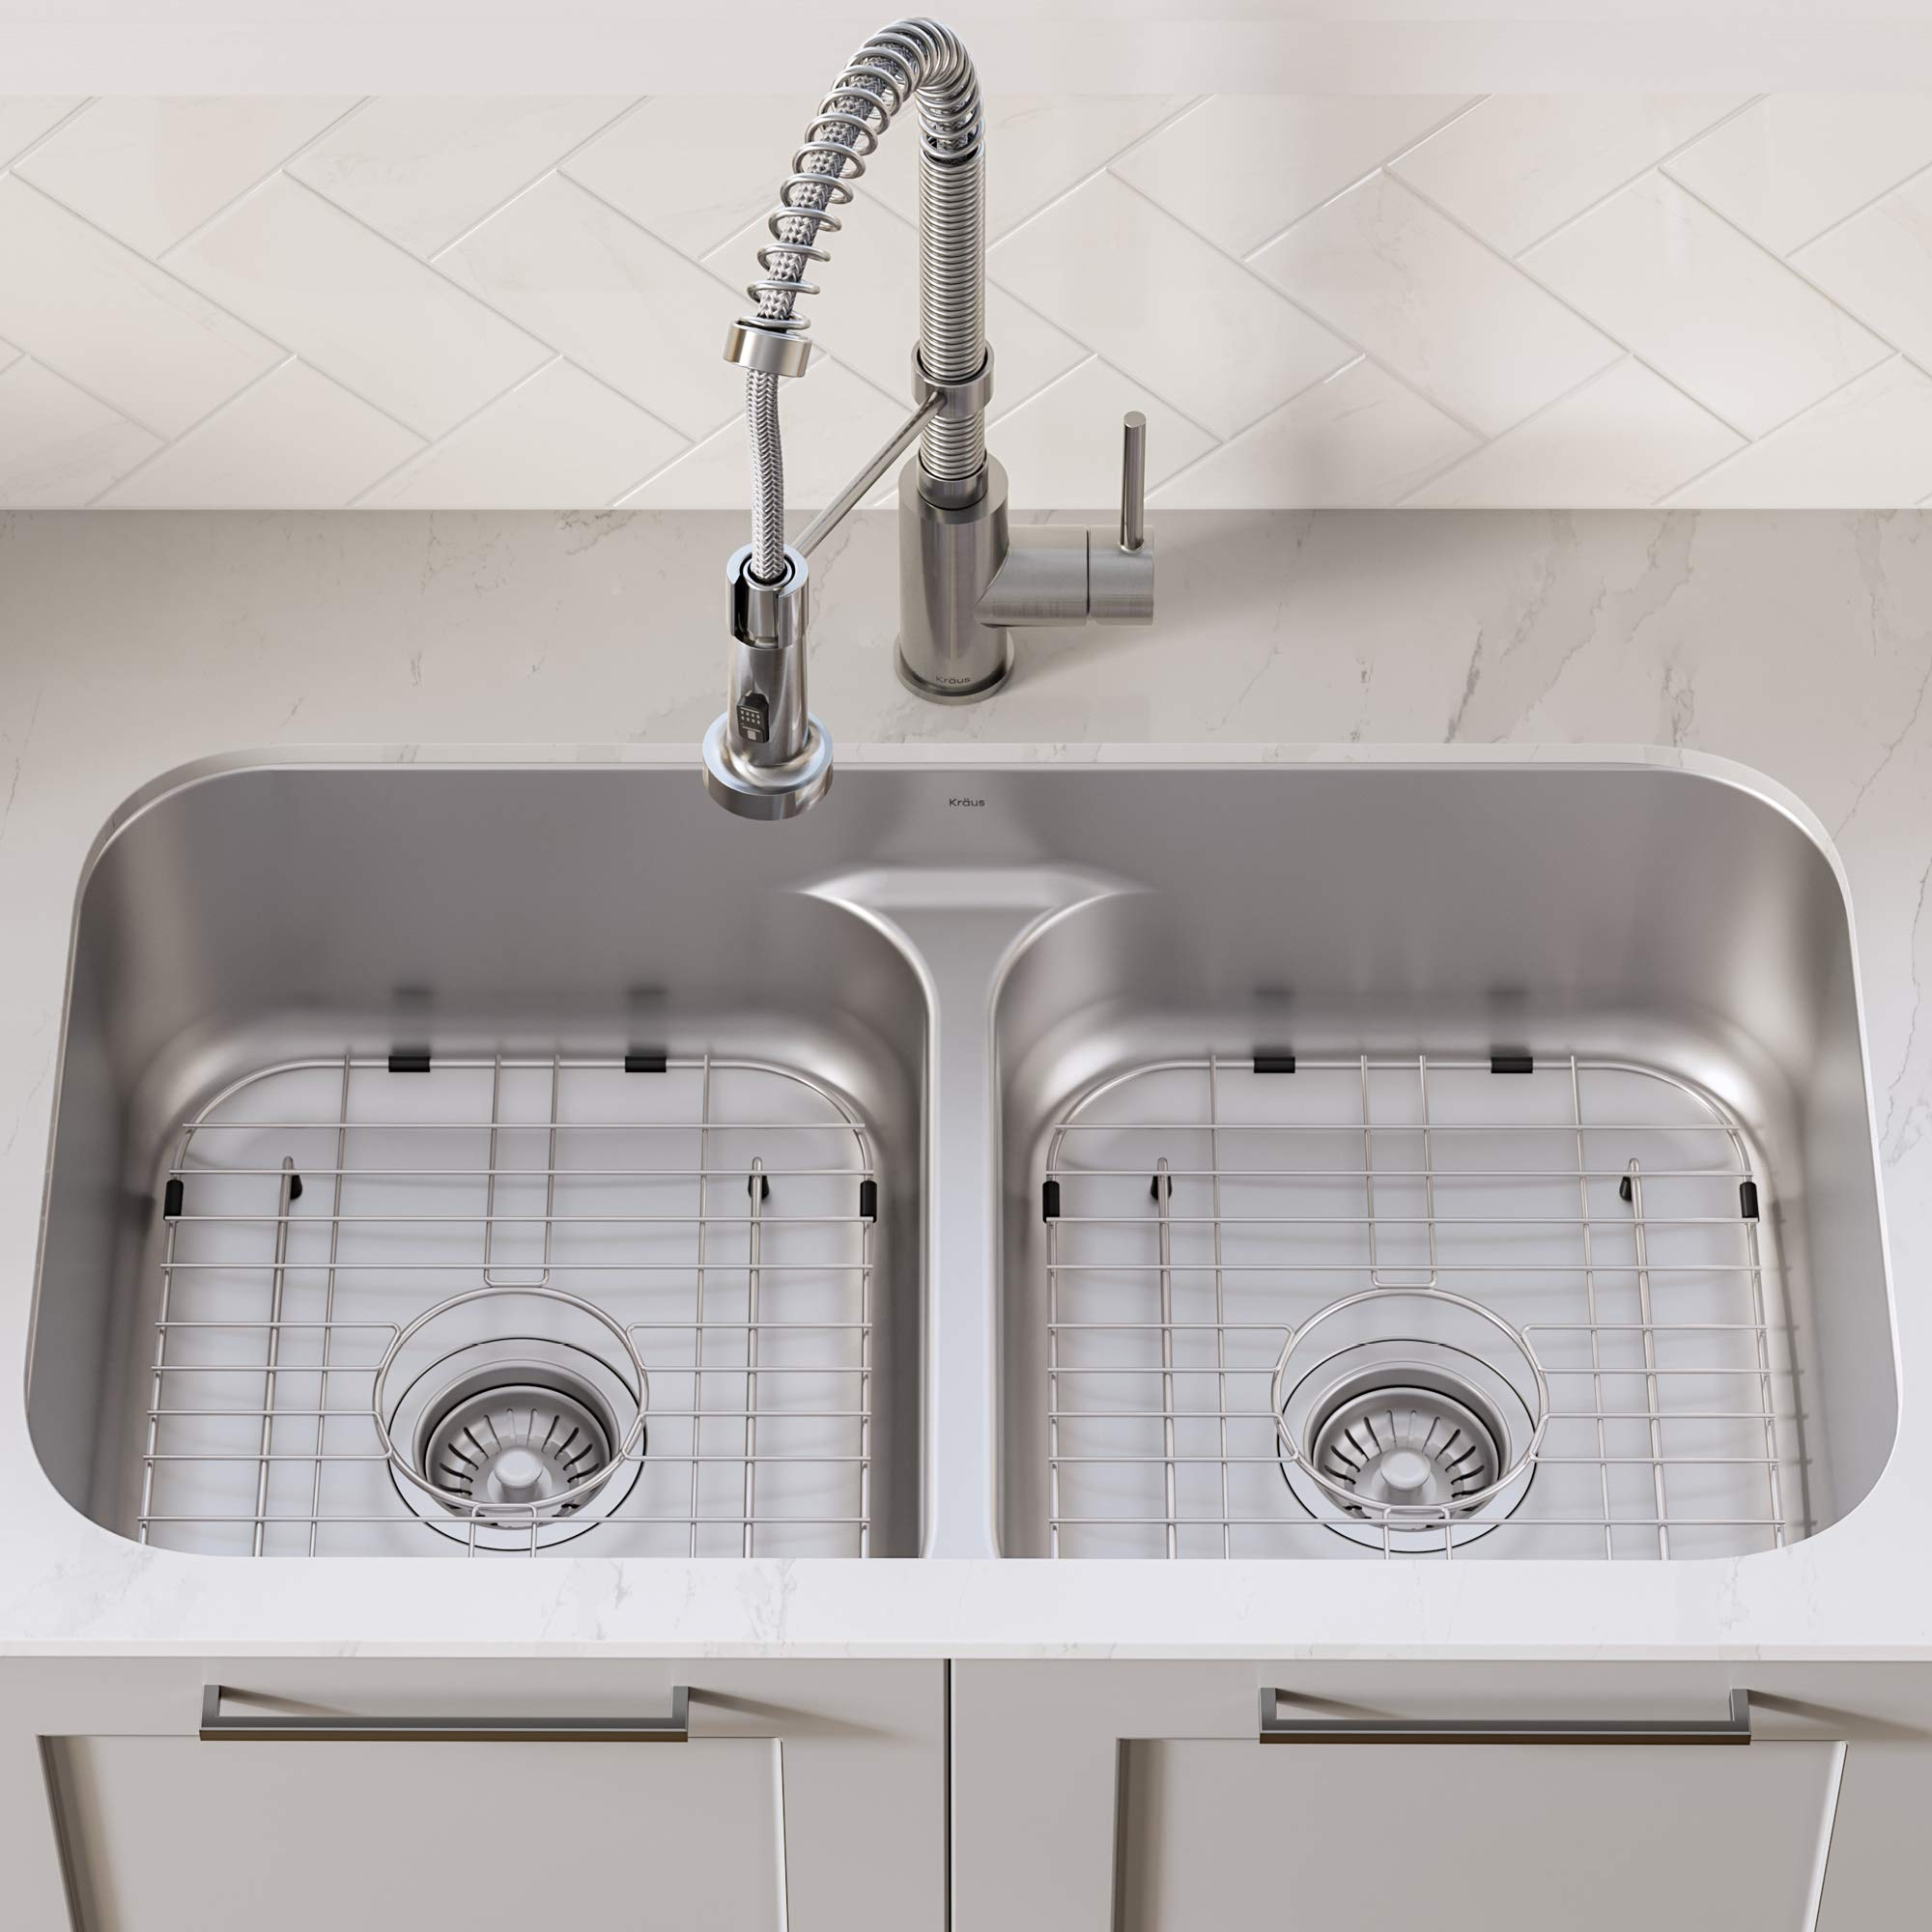 KRAUS KCA-1200 Ellis Kitchen Combo Set with 33-inch 16 Gauge Undermount Kitchen Sink and Bolden 18-inch Pull-Down Commercial Style Kitchen Faucet, Stainless Steel Finish by Kraus (Image #4)